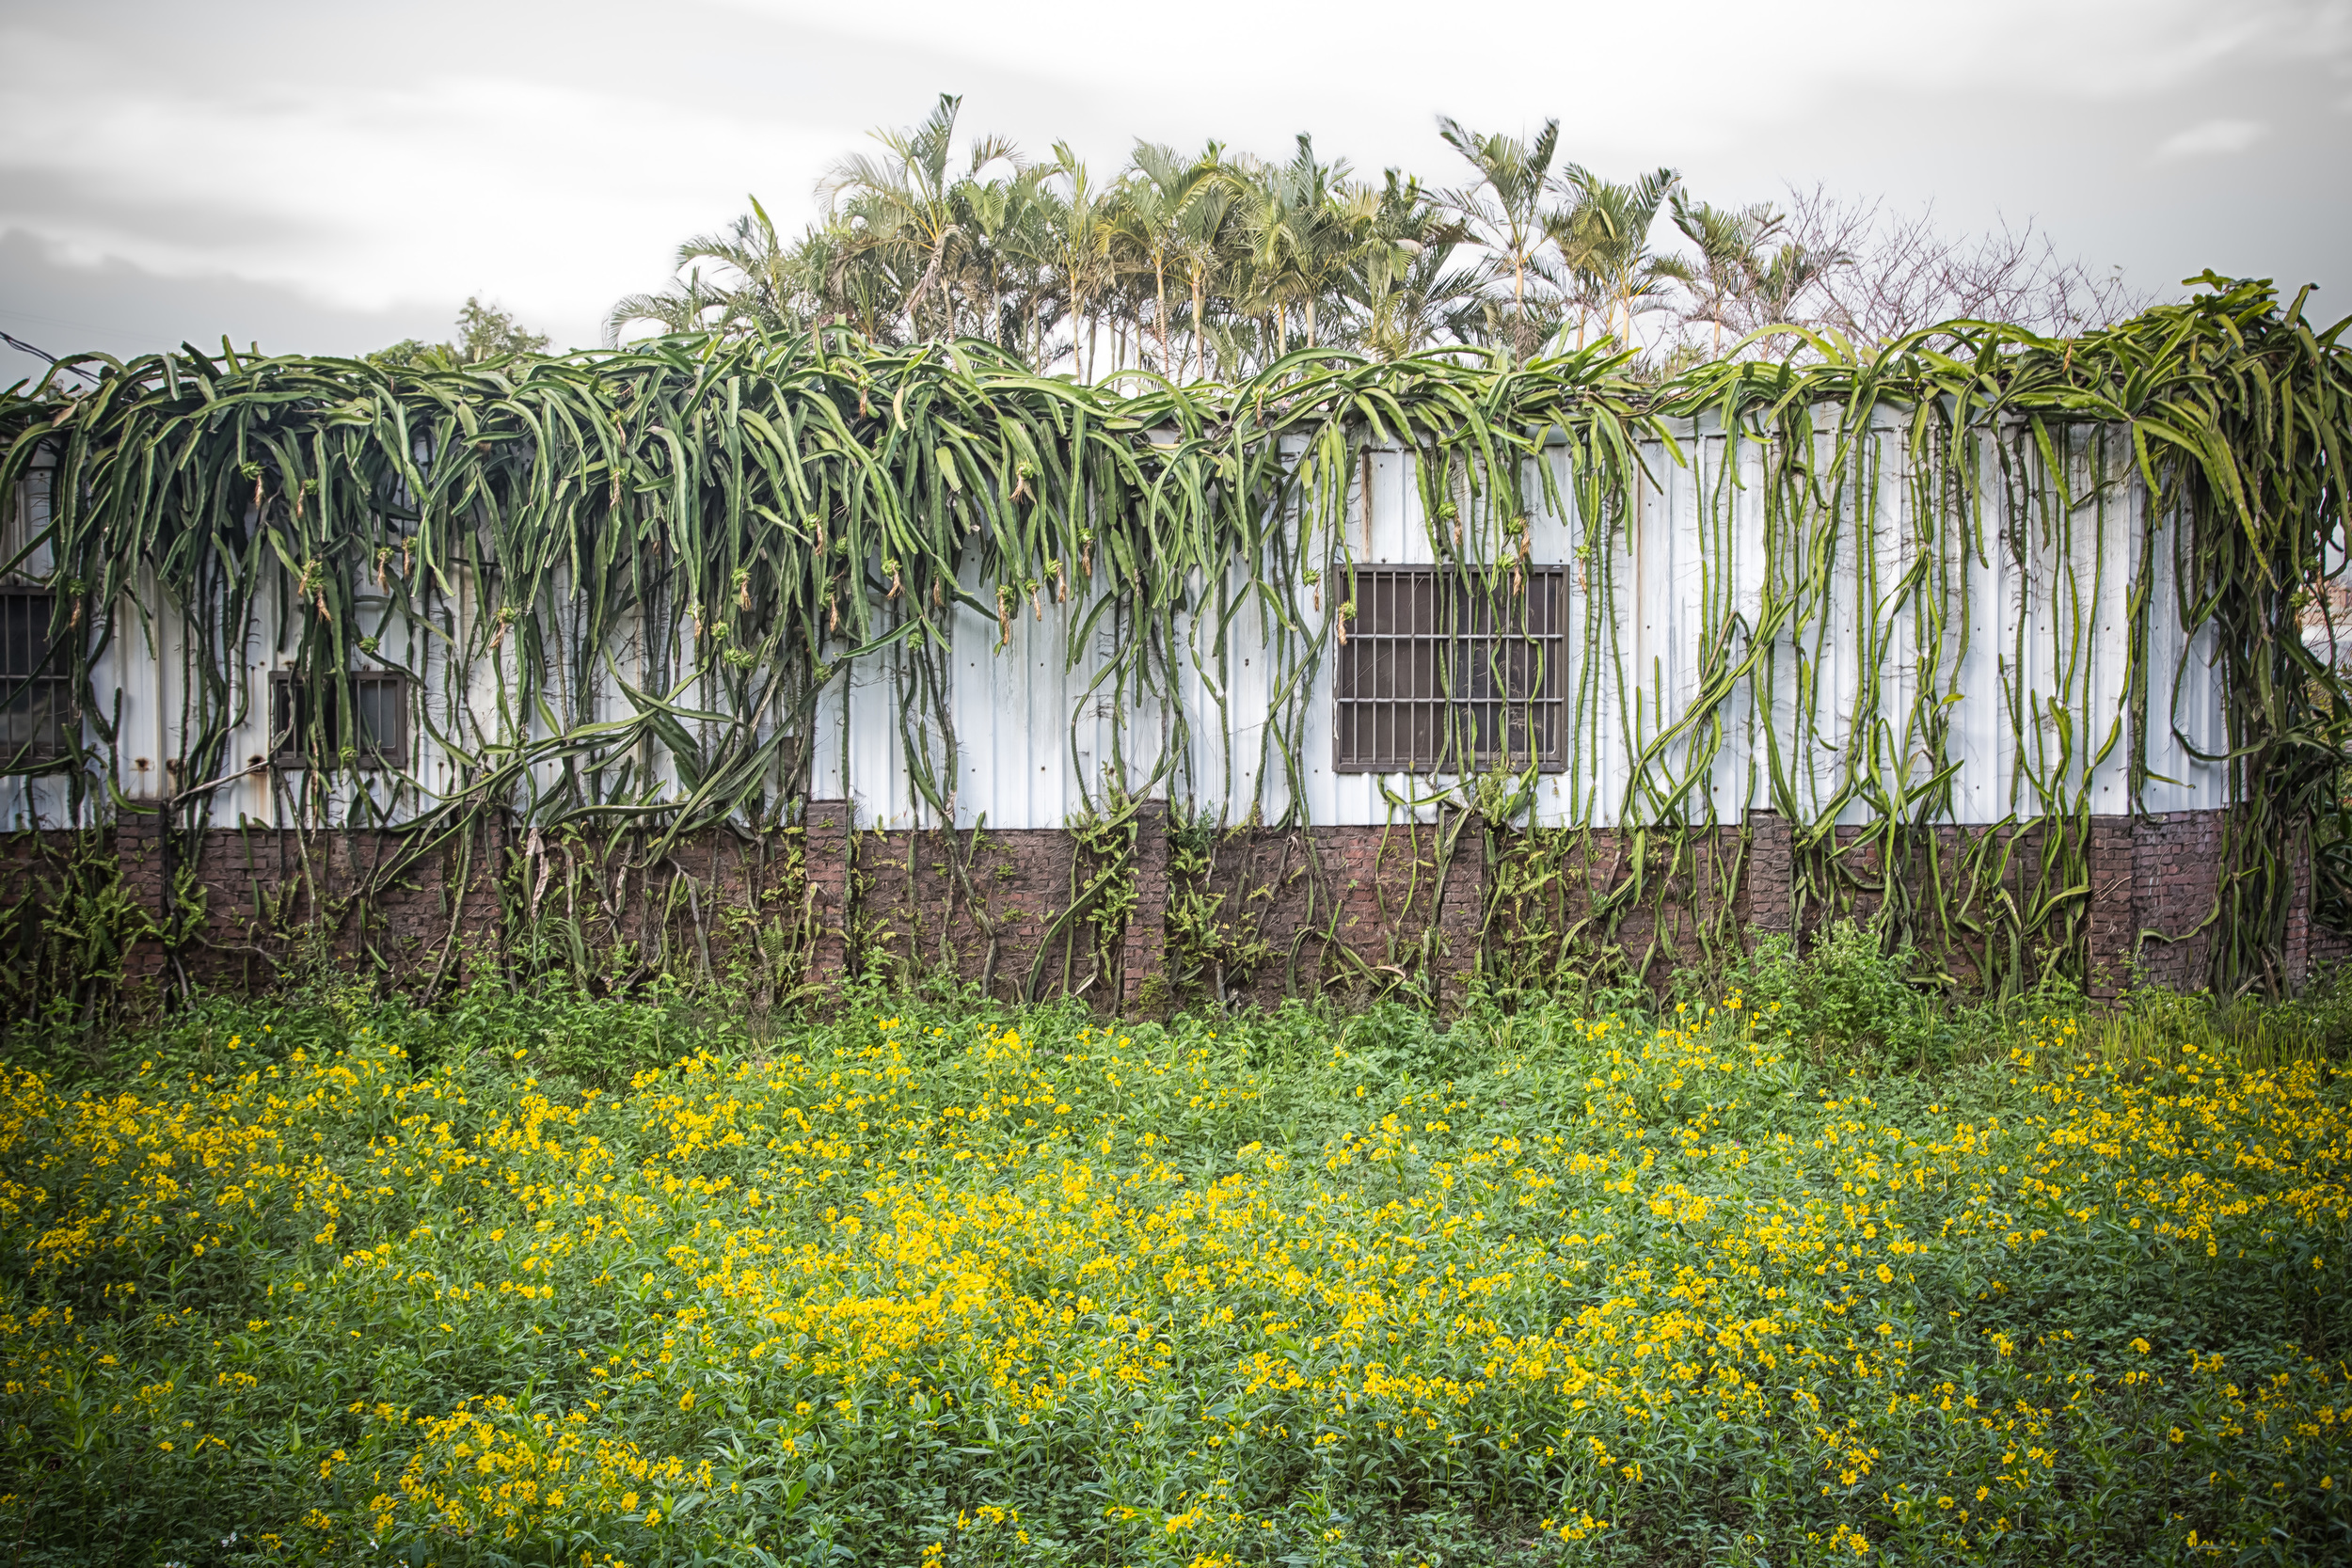 - A field of flowers with dragon-fruit growing on the side of a building.